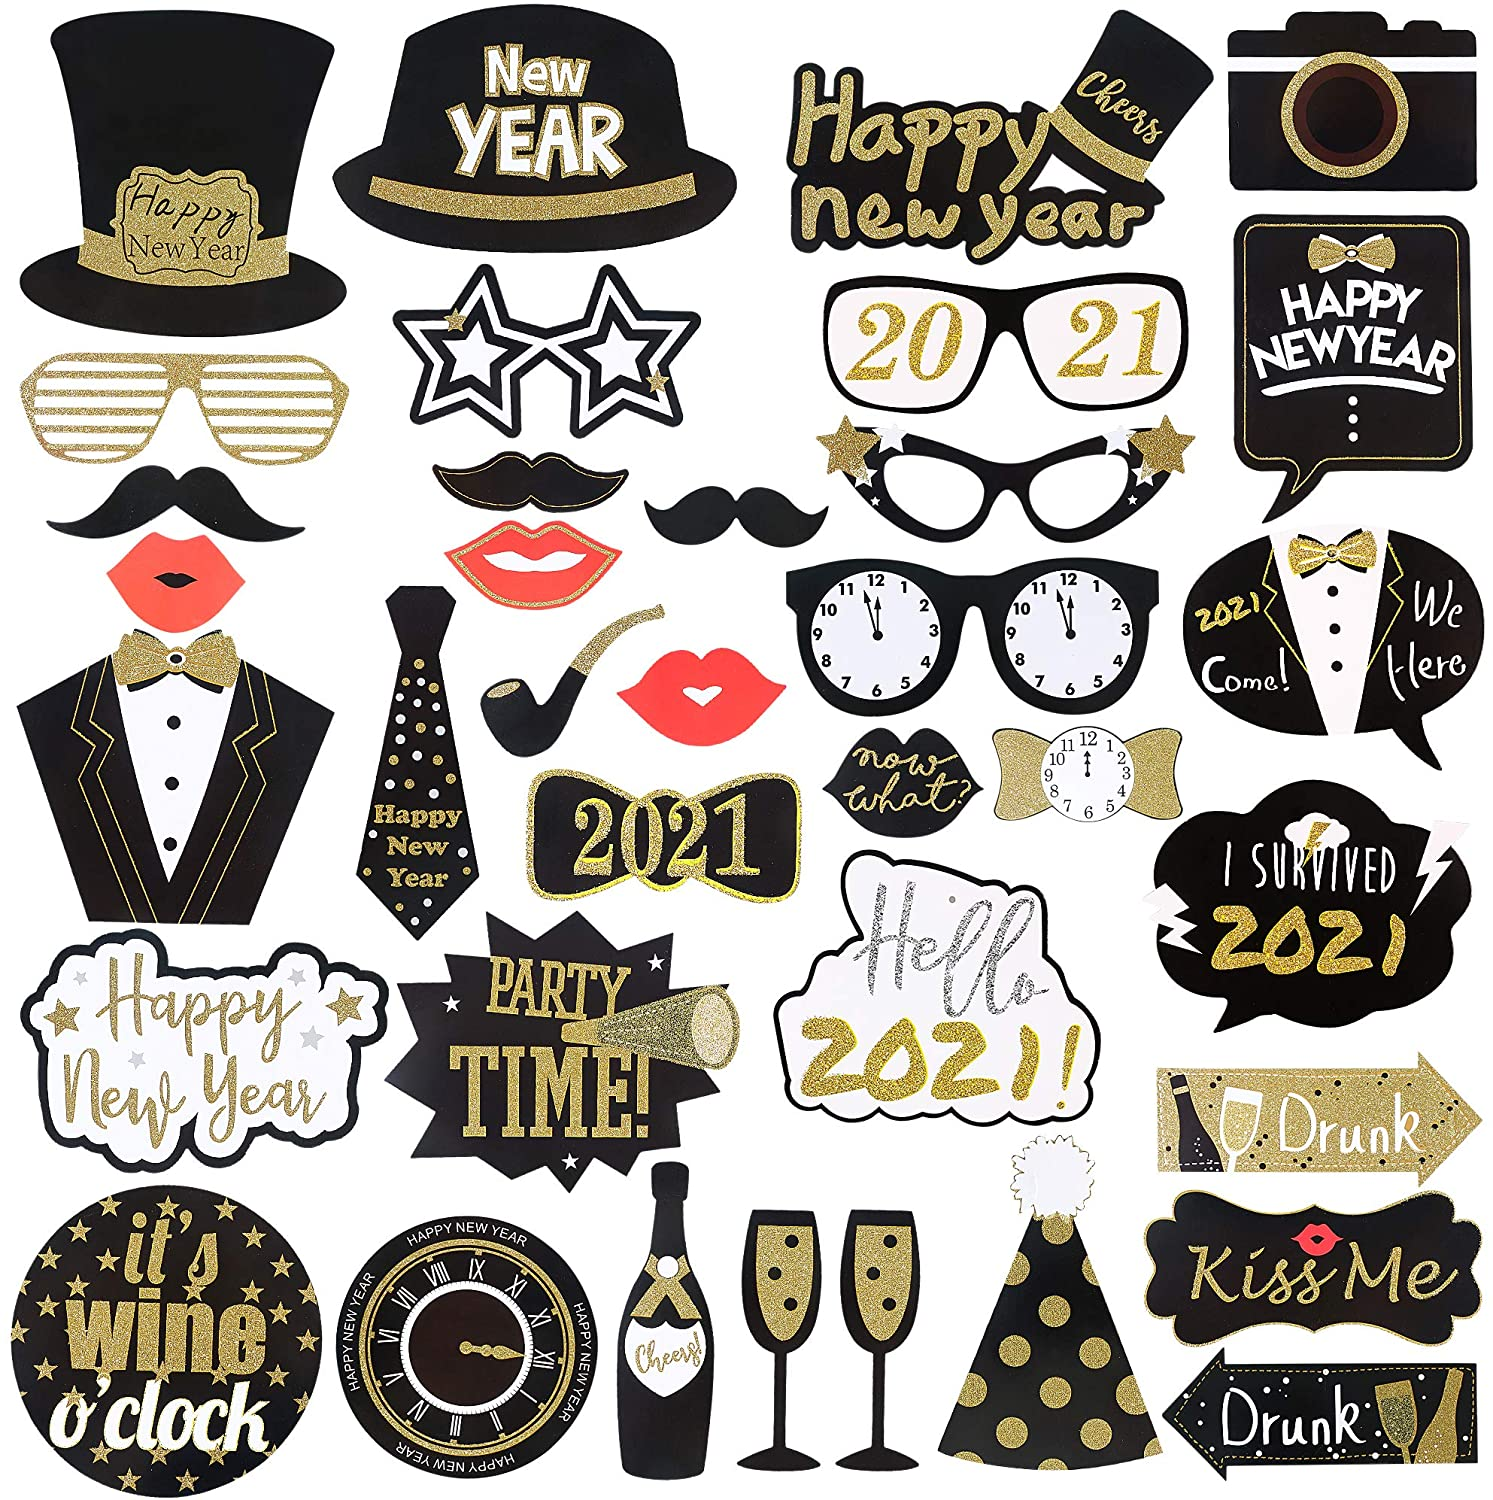 New Year's Photo Booth Props Only $10.99!